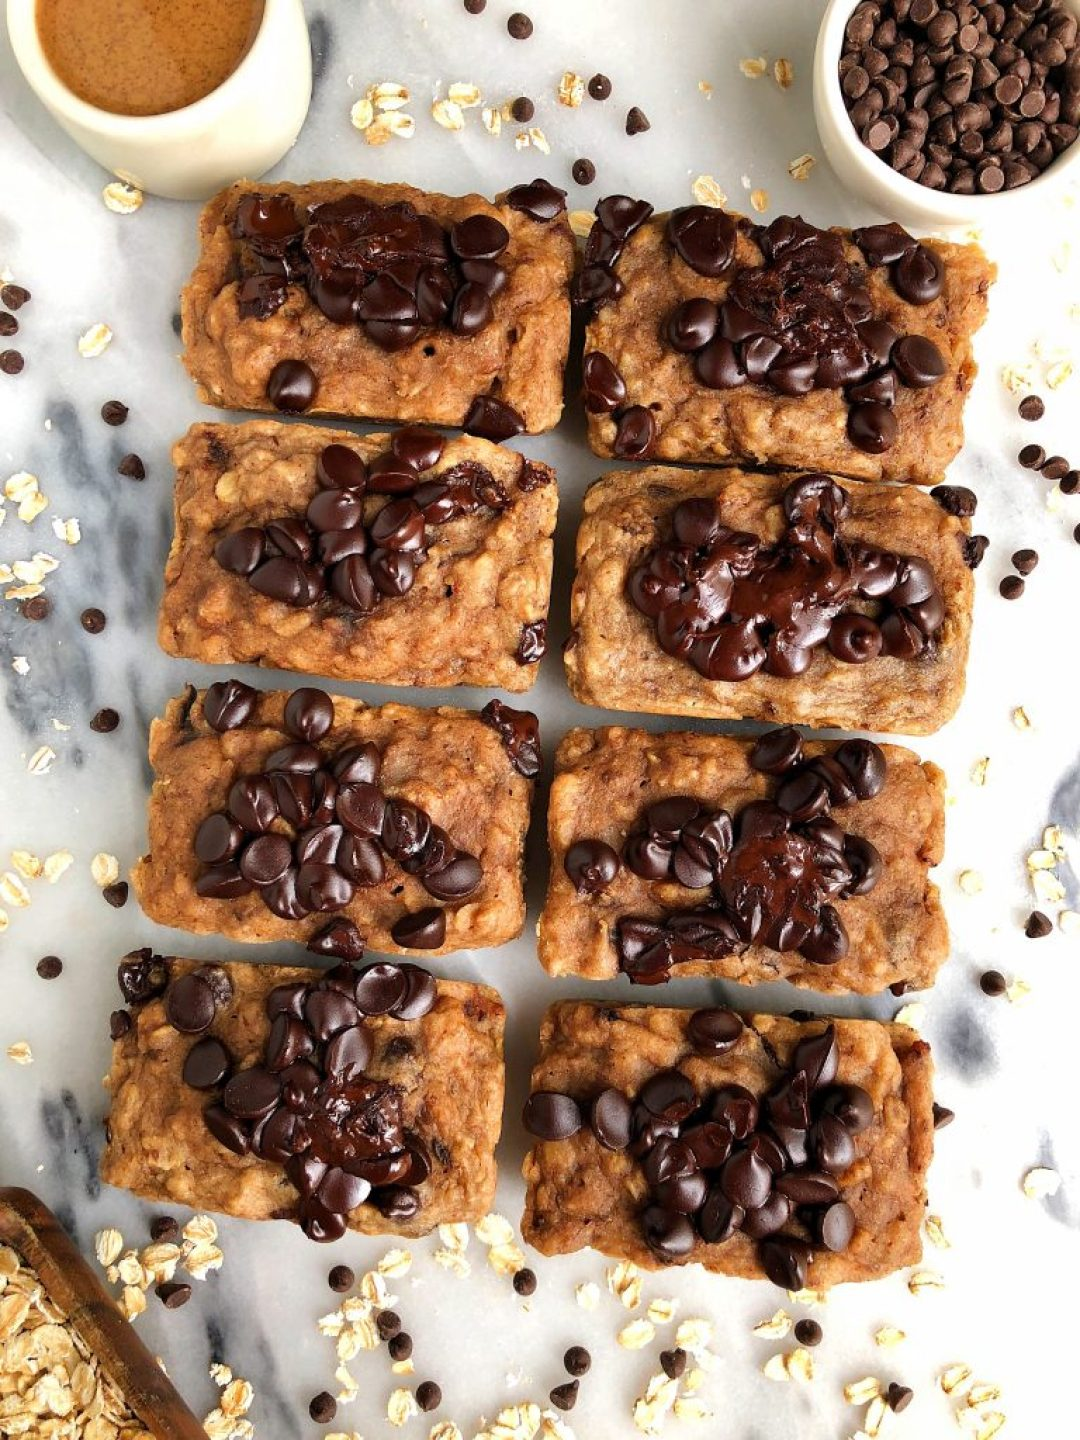 Mini Vegan Chocolate Chip Banana Loaves made with gluten-free and nut-free ingredients for dreamy mini banana breads!